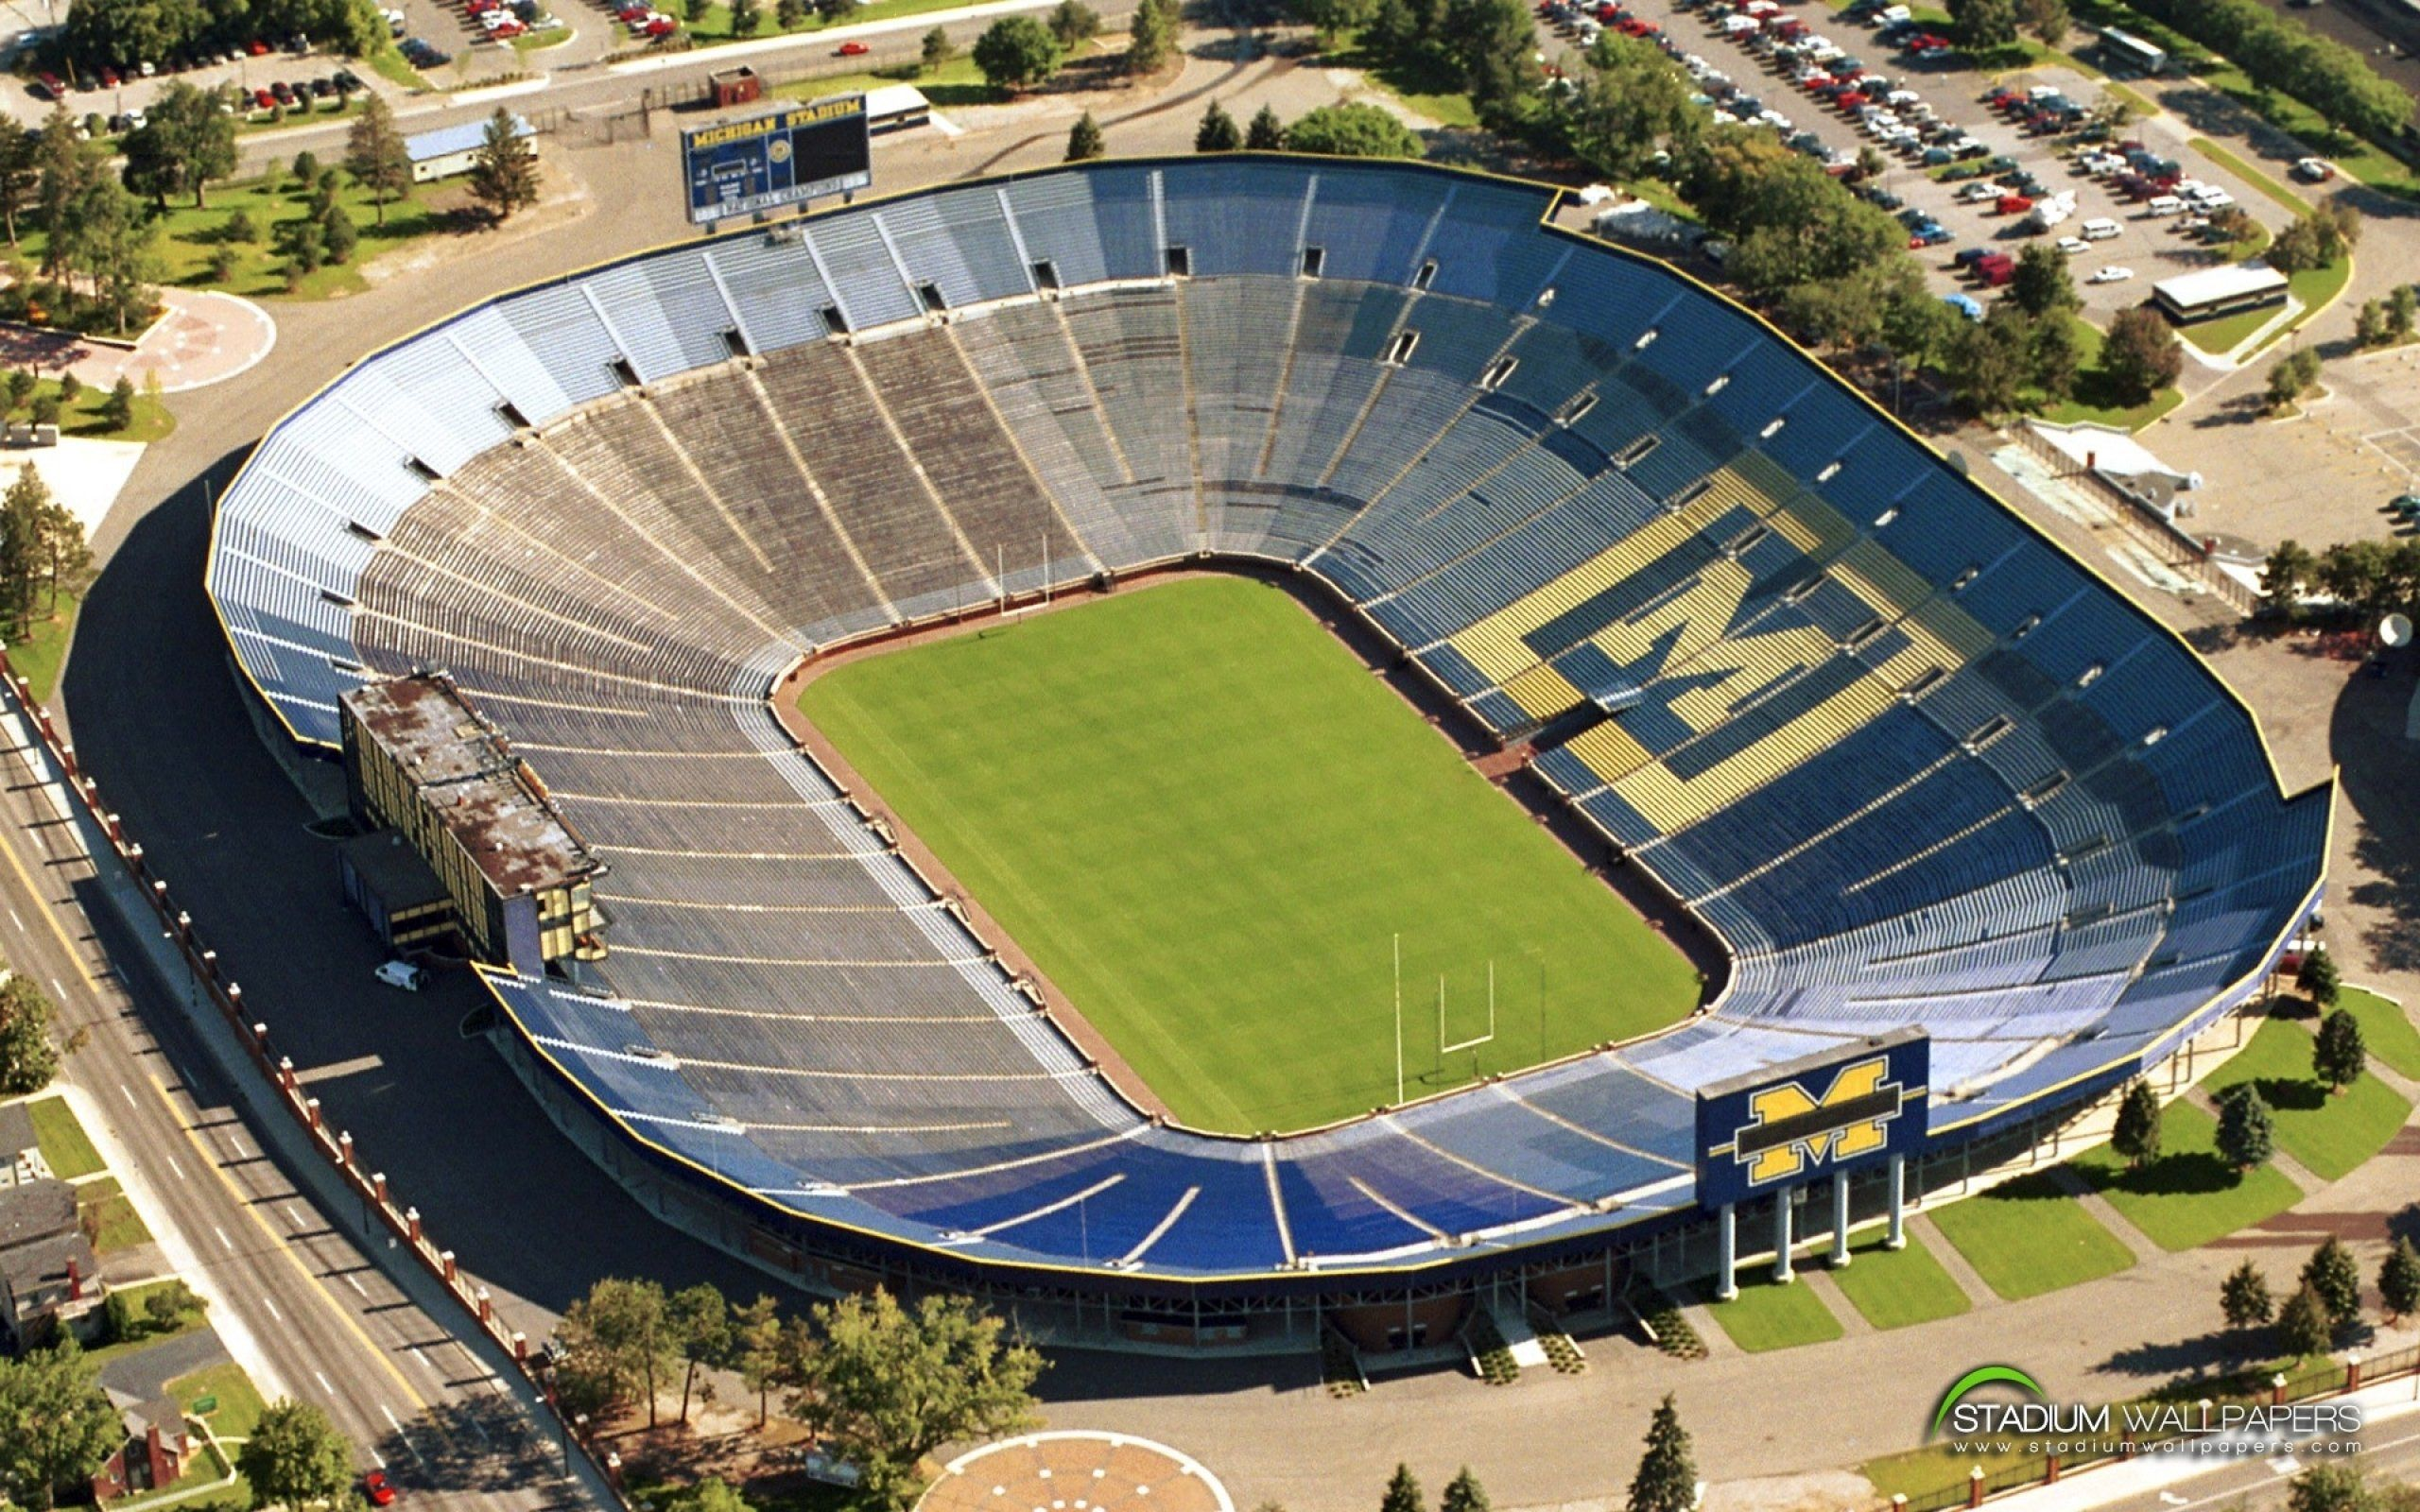 Liftkey Com This Website Is For Sale Liftkey Resources And Information In 2020 Michigan Football Stadium Football Stadiums